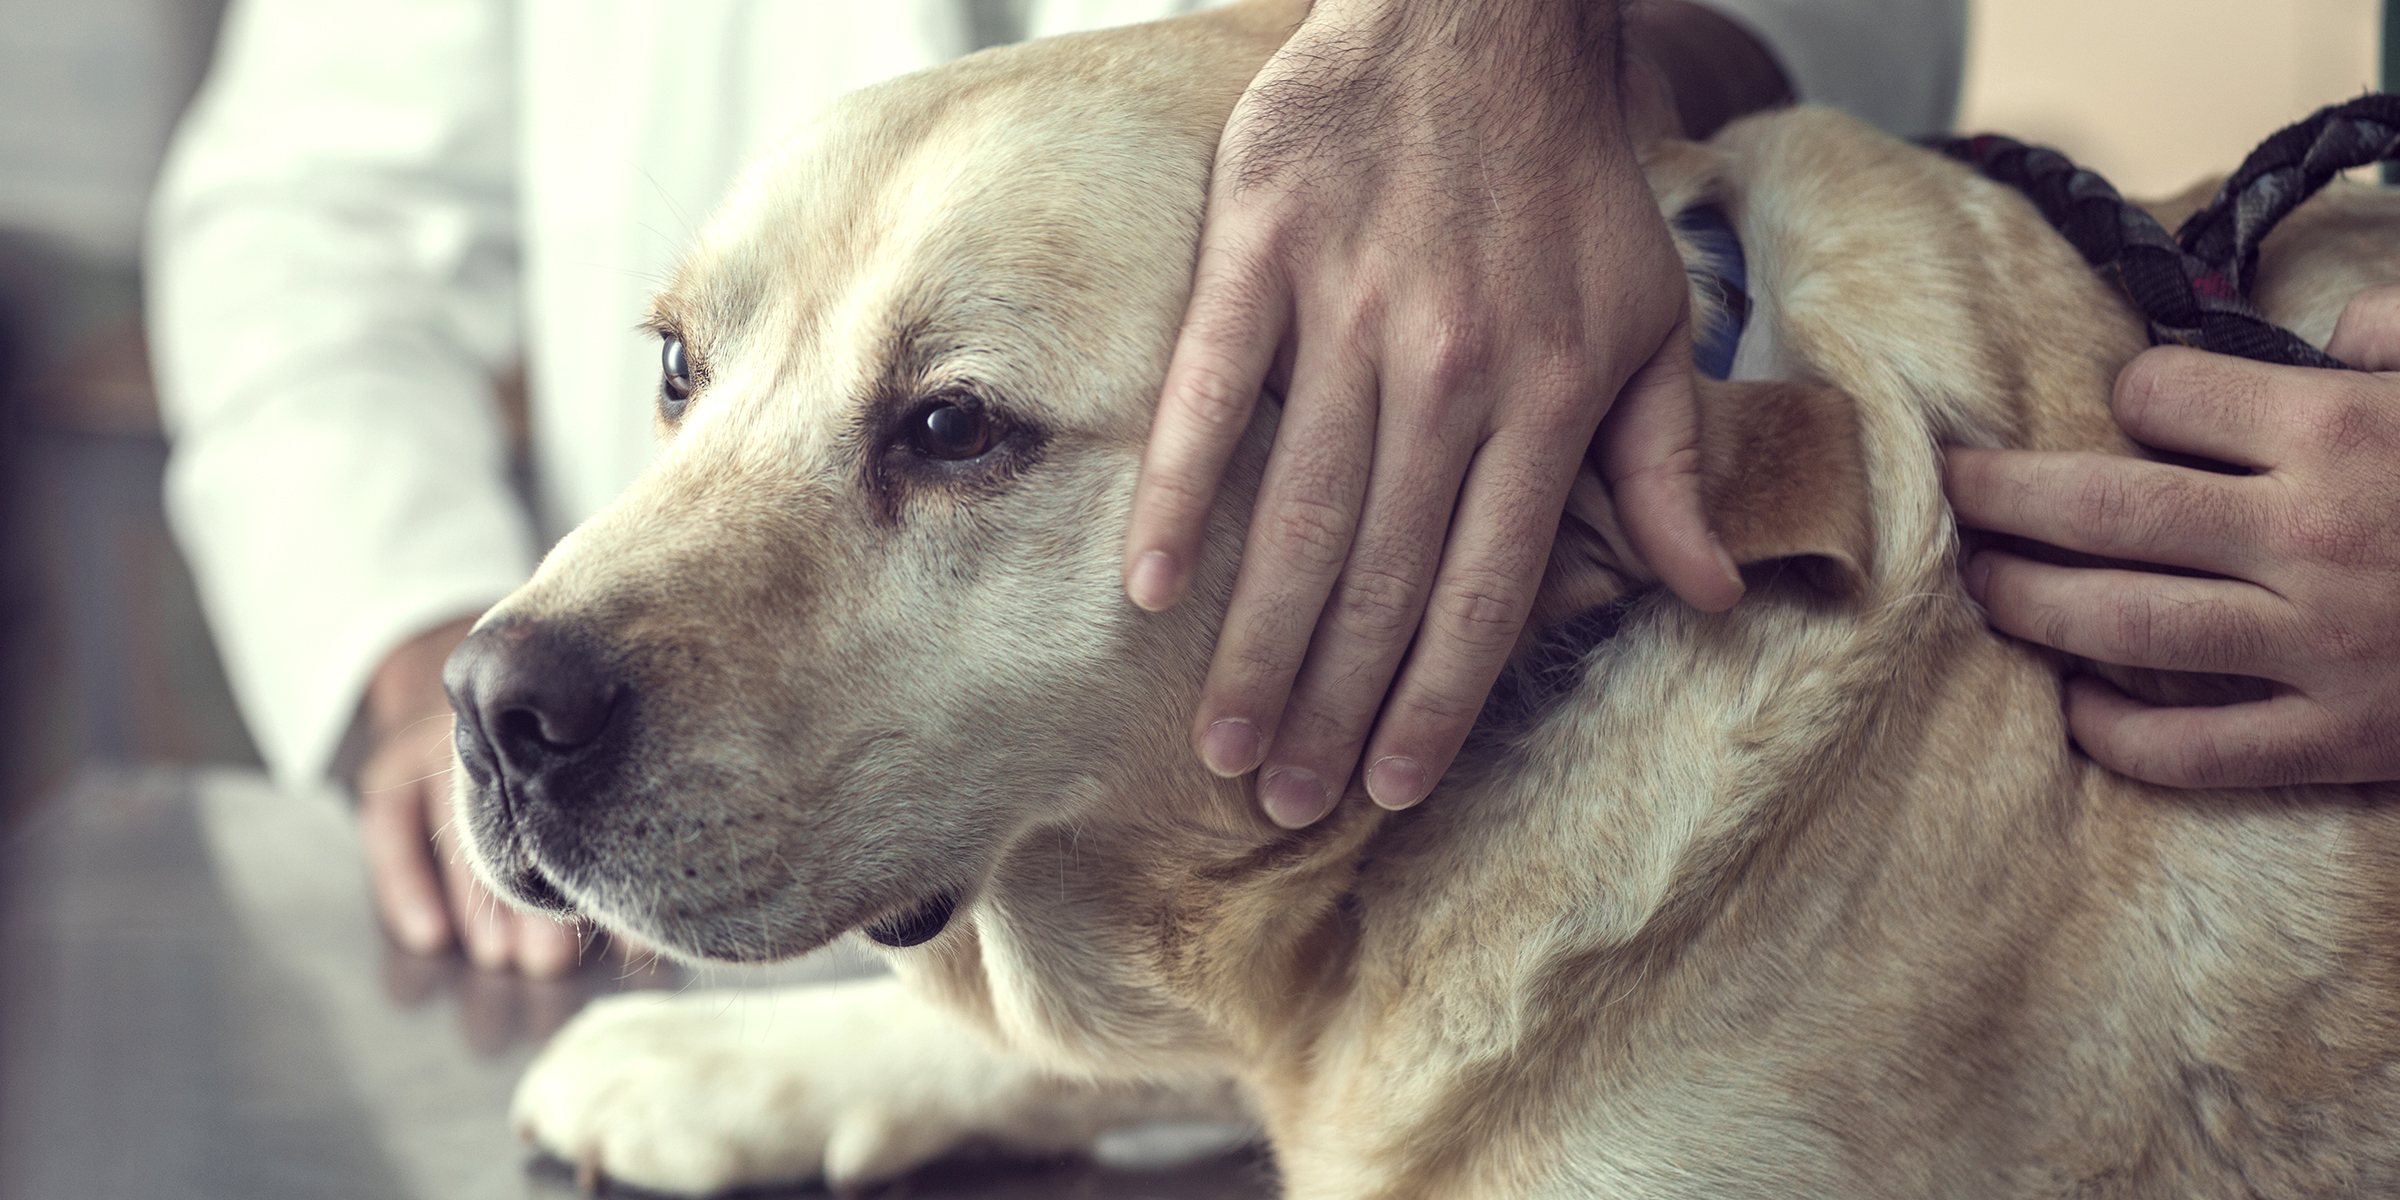 Vet S Comment About Pet Owners Leaving Room Before Euthanasia Sparks Conversation